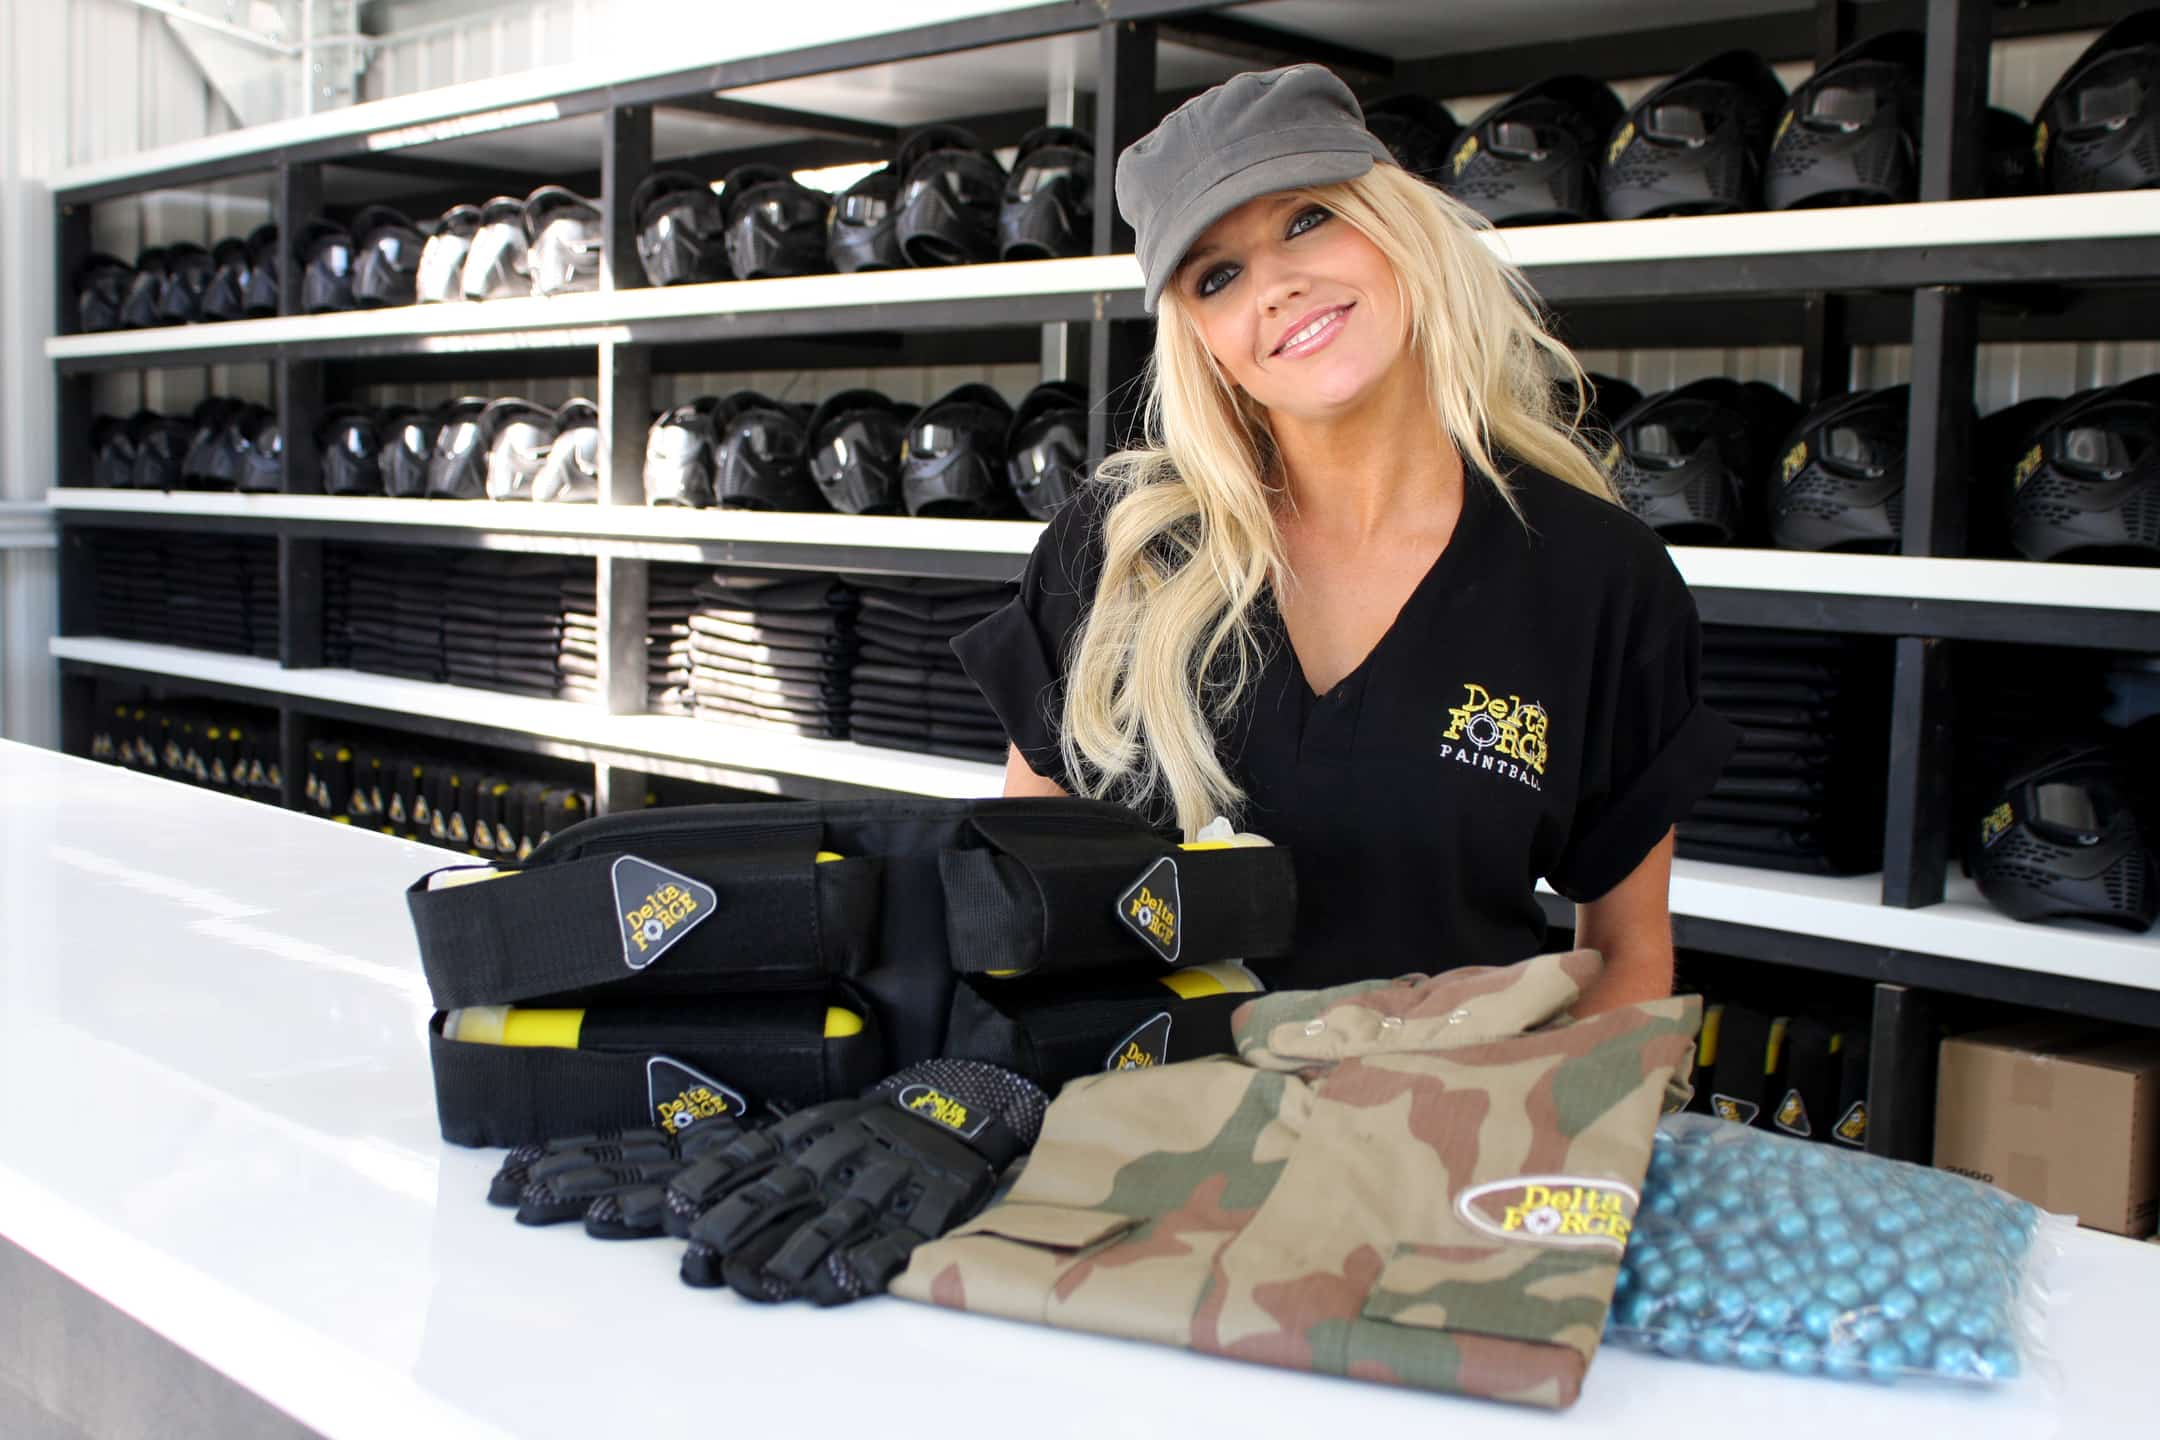 Smiling blonde cashier poses with paintball equipment